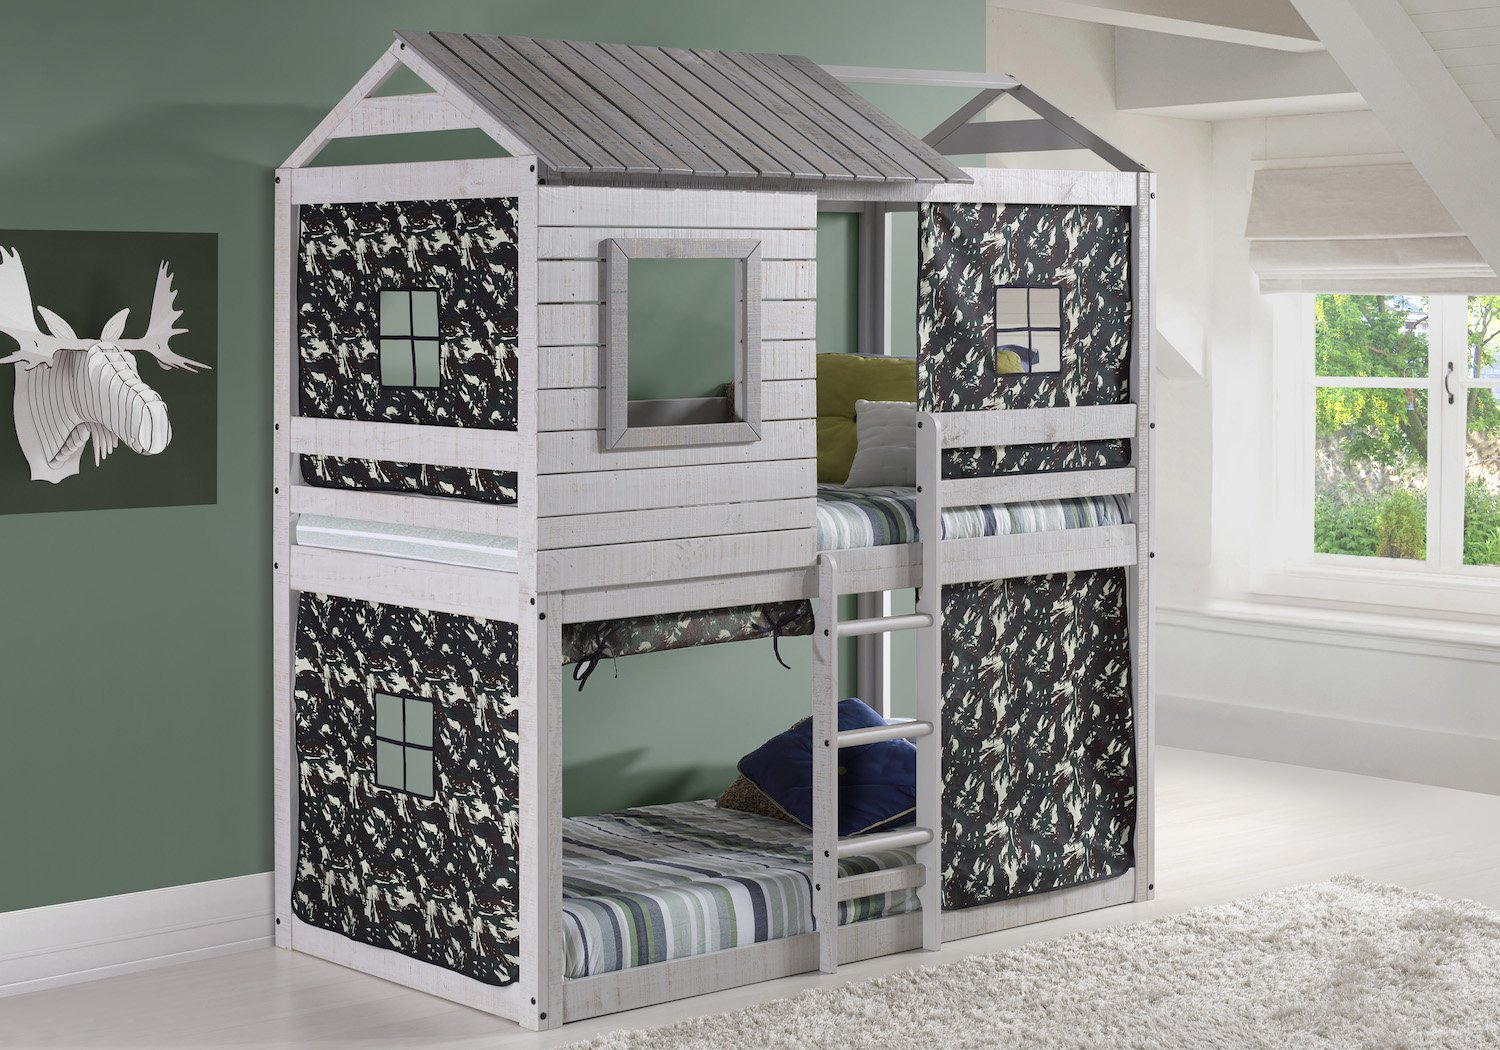 Amazon.com House Double Bunk Beds with Camouflage Tents - Free Storage Pockets Kitchen u0026 Dining & Amazon.com: House Double Bunk Beds with Camouflage Tents - Free ...